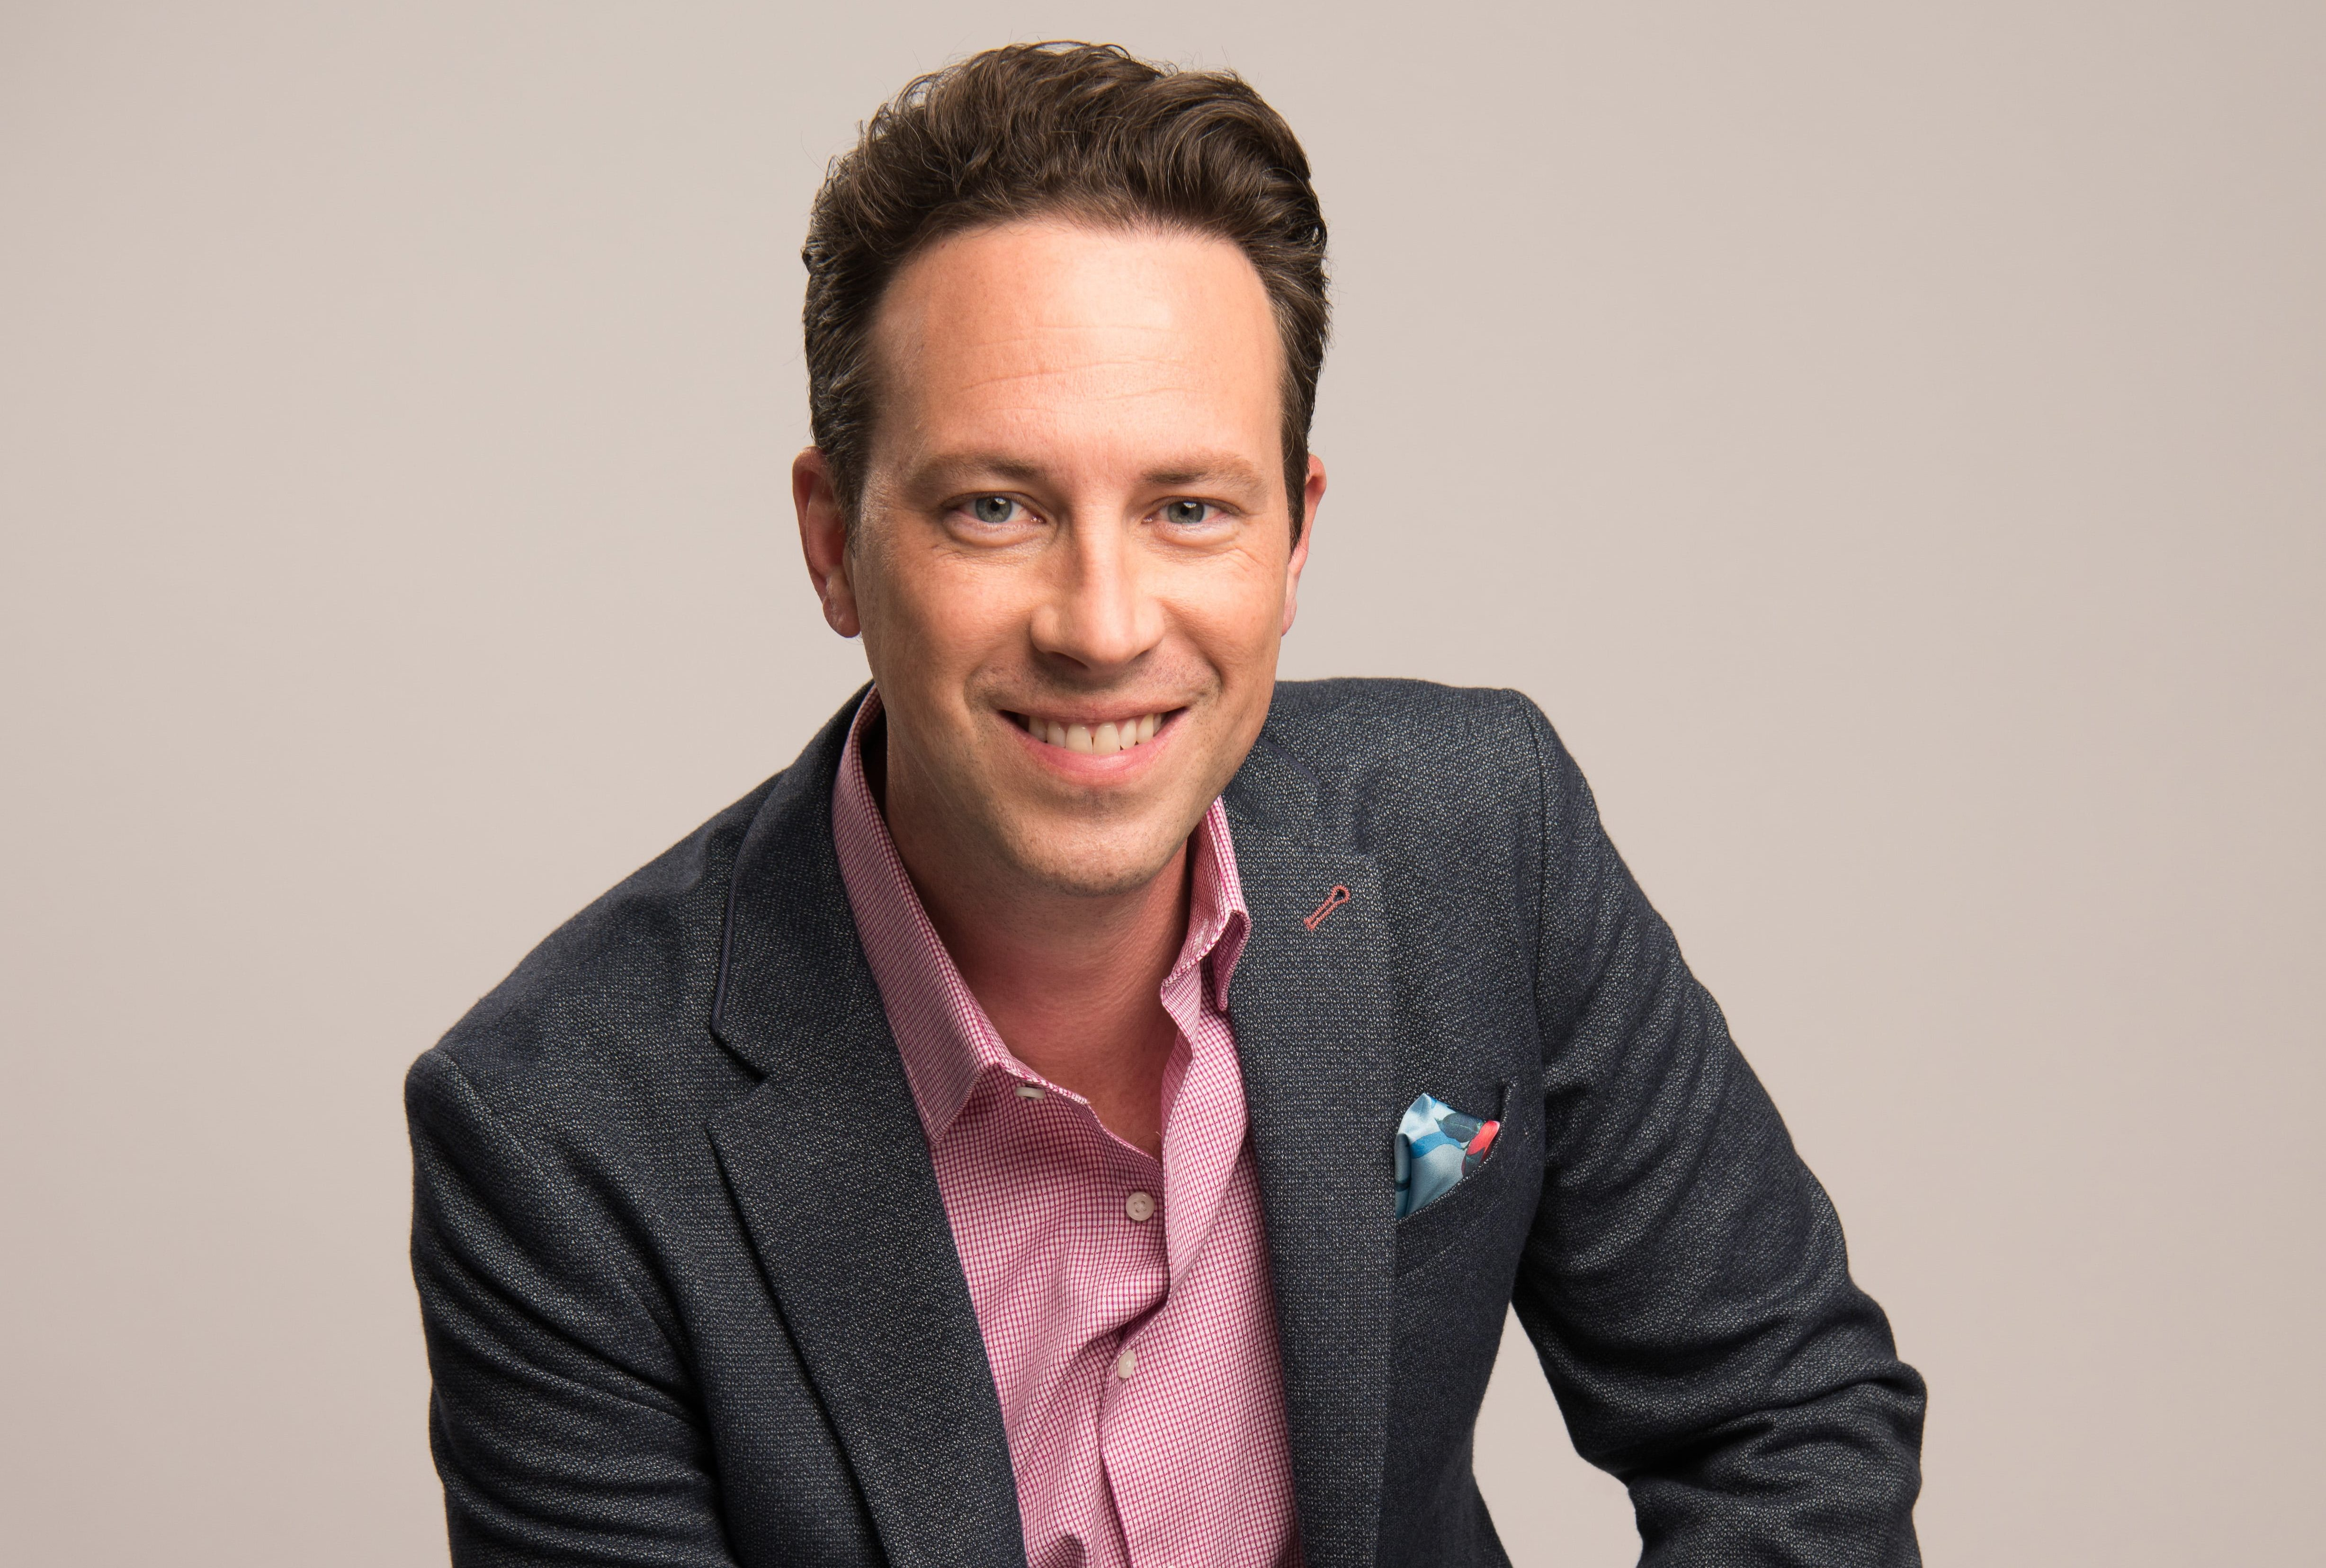 CNLP 271: Ken Coleman on the Fine Art of World-Class Interviewing, How to Get the Best Out of People and How to Network Without Being a Social Climber